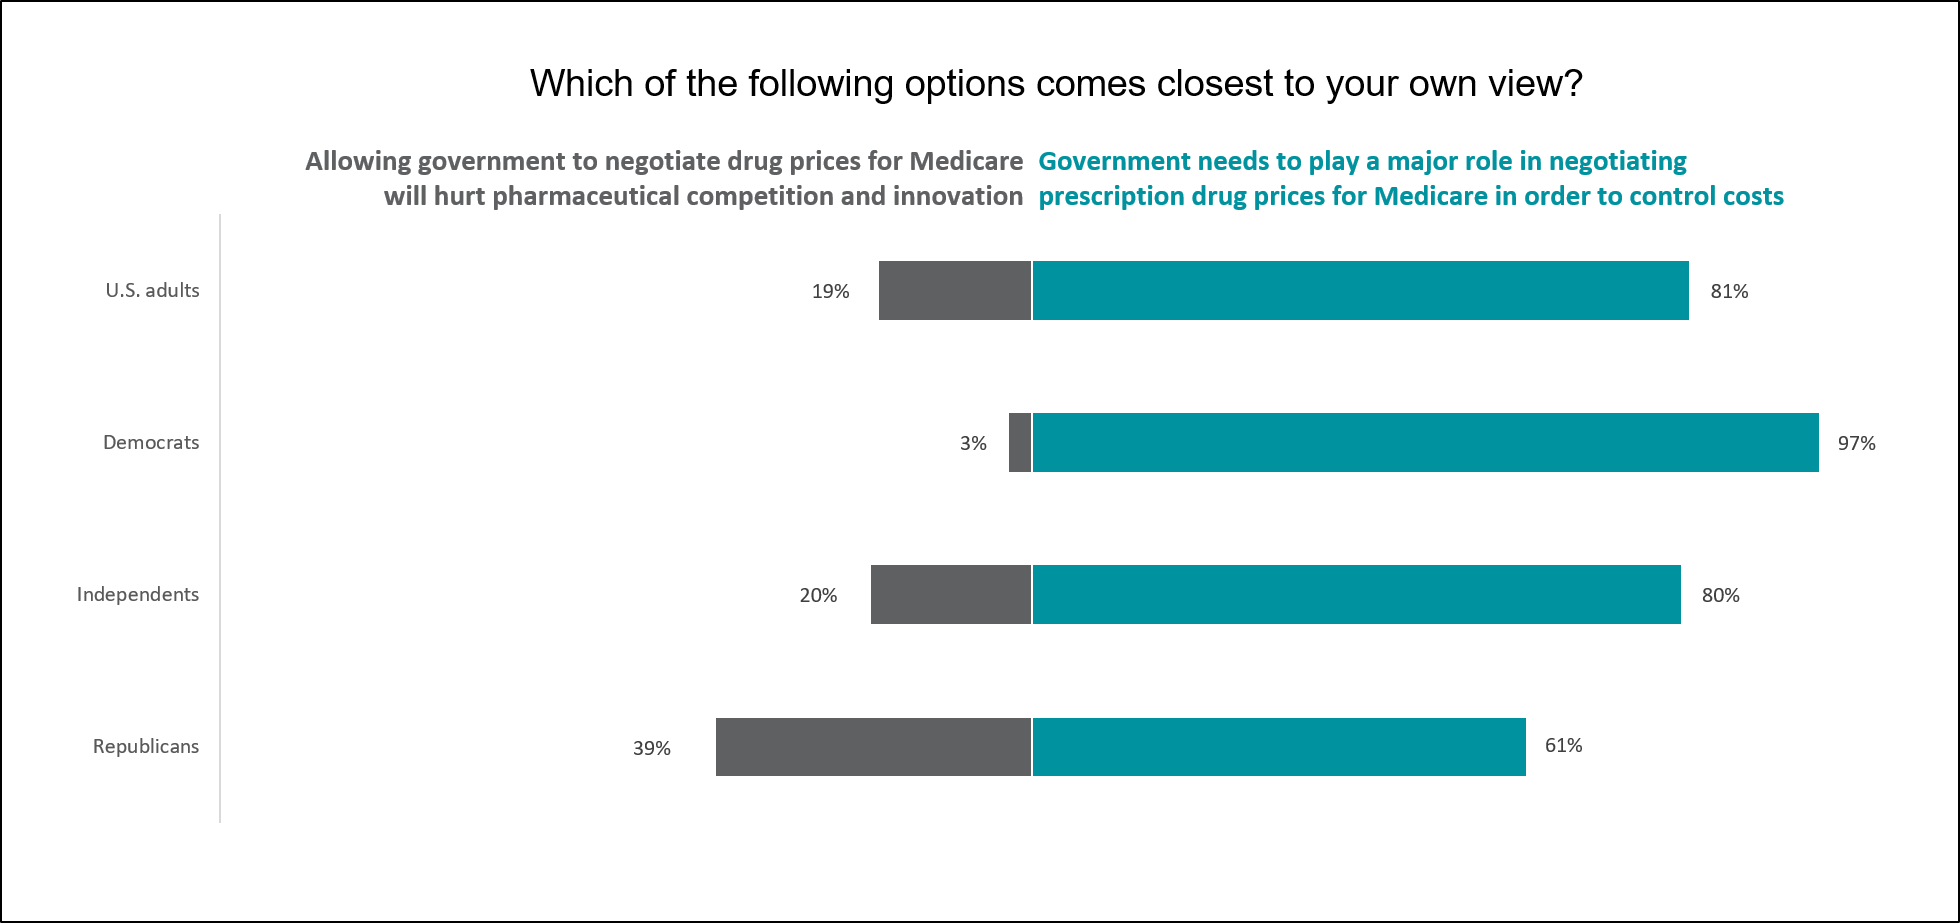 Most Americans Support Medicare Negotiation for Drug Prices Despite Claims It Would Hurt Innovation